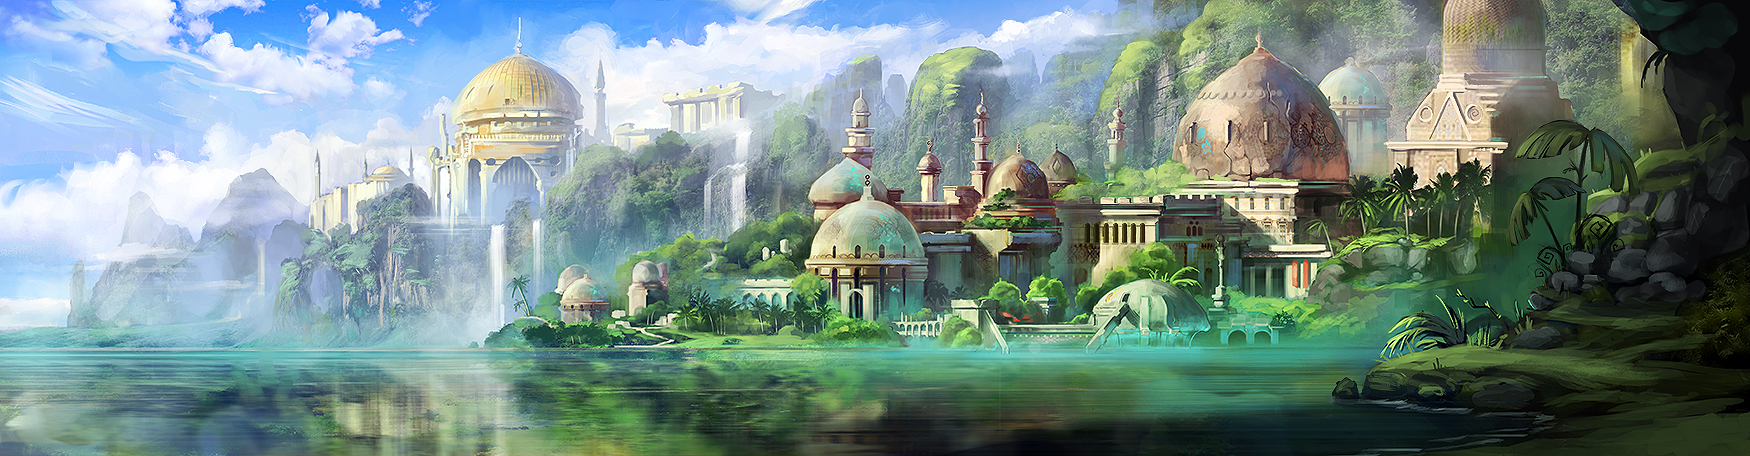 Jungle City by jordangrimmer